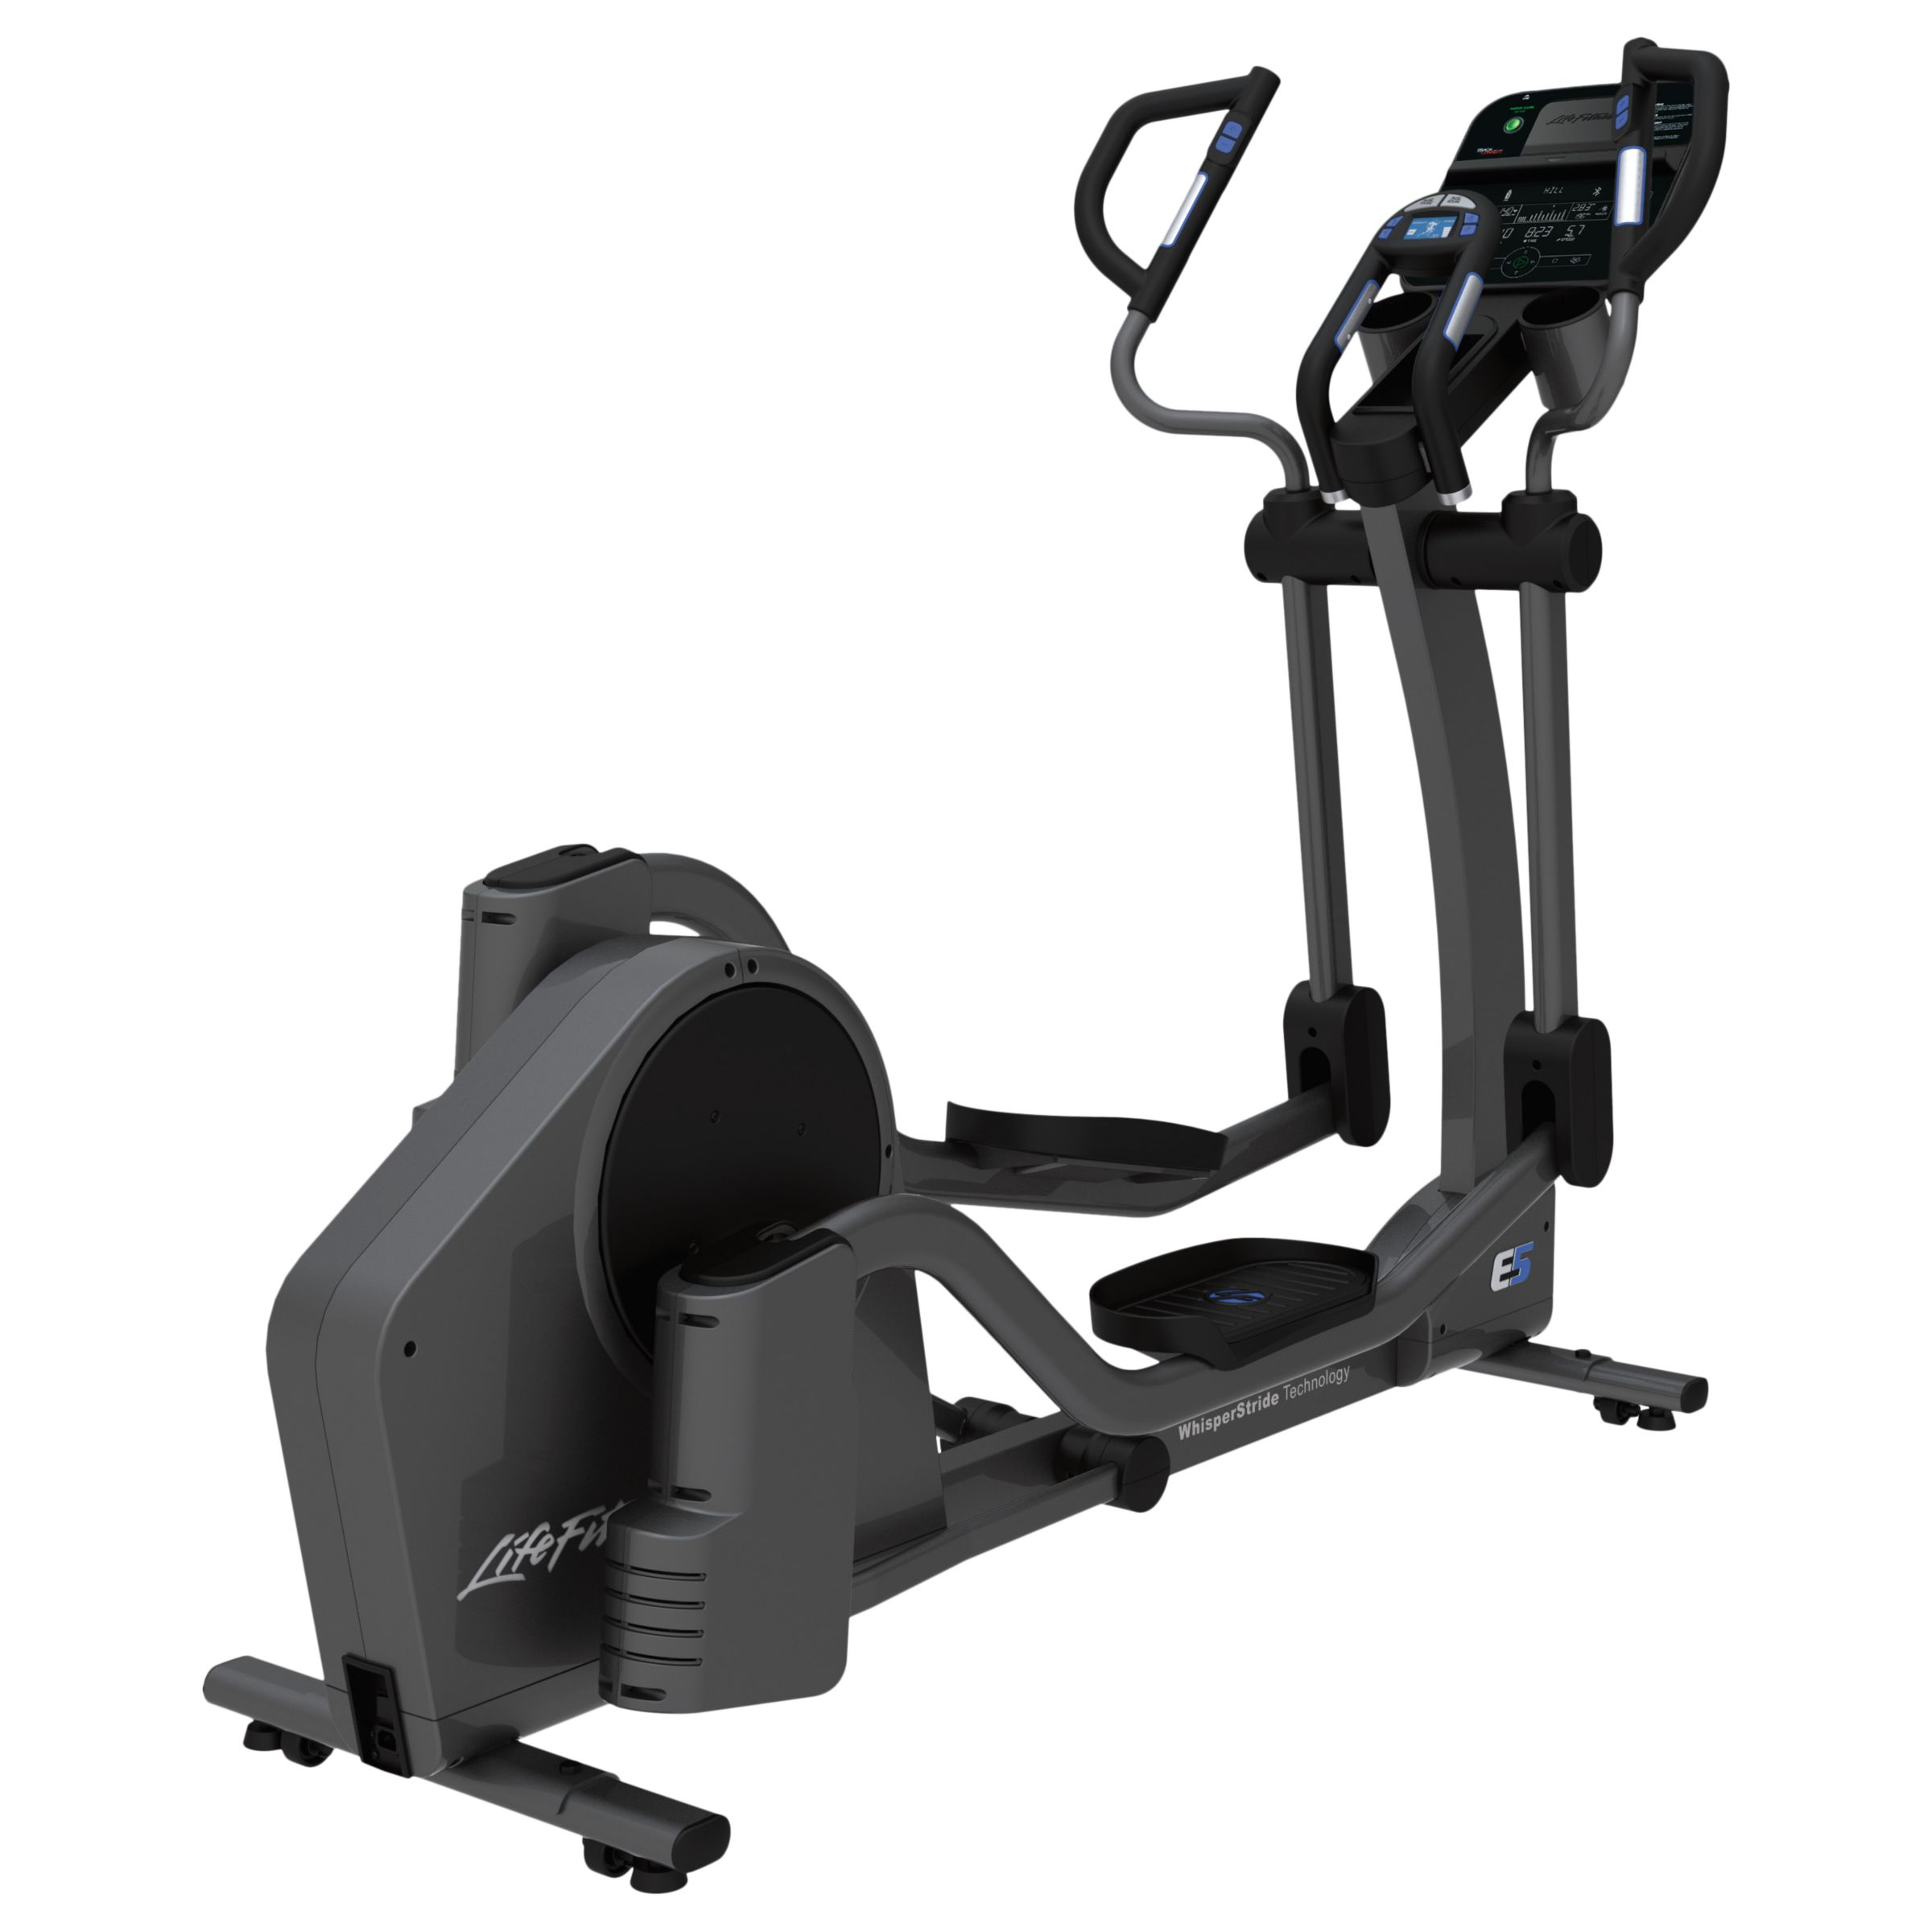 Life Fitness Life Fitness E5 Eliliptical Cross Trainer with Track Plus Console